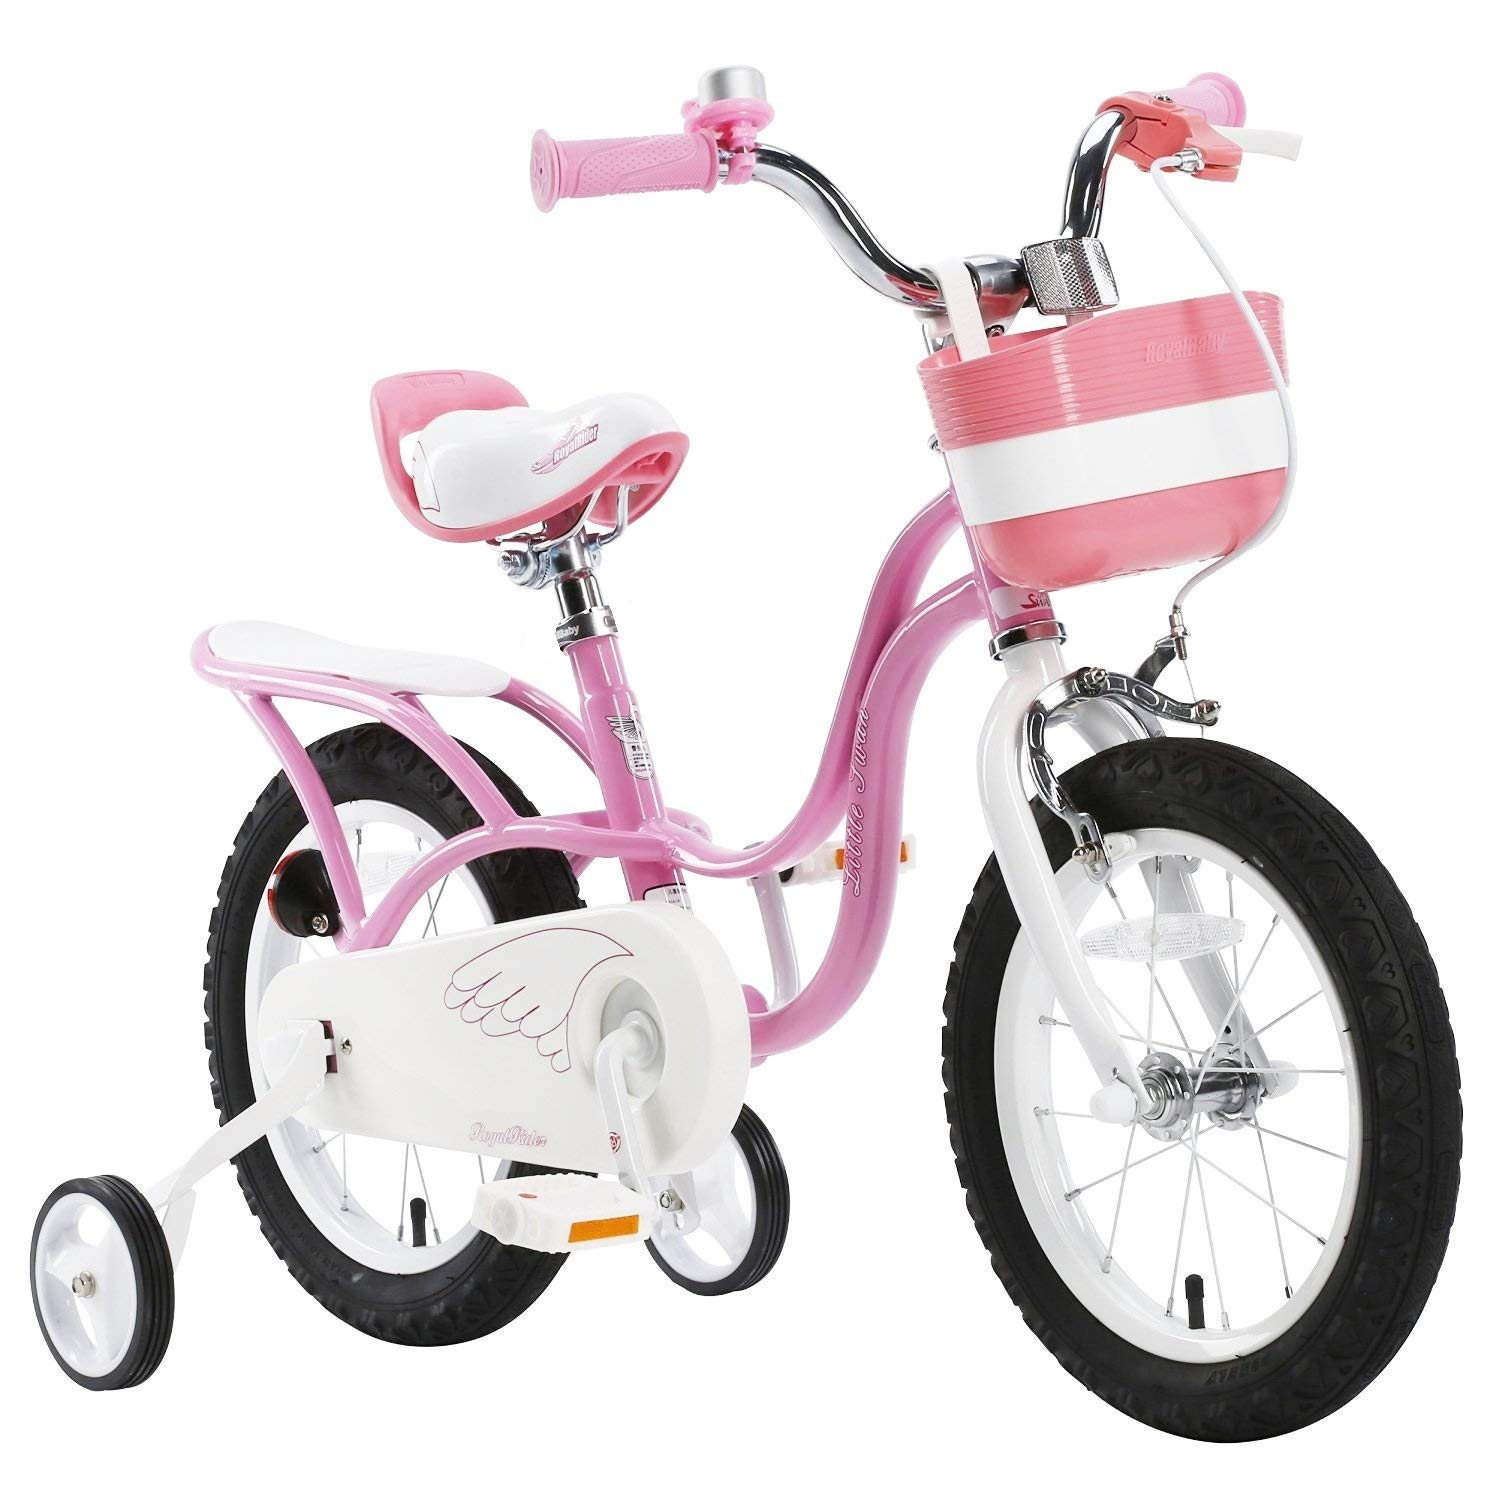 """Royalbaby pink swan girl's kids children bike in size 12"""" 14"""" 16"""" 18"""" with stabilisers and basket."""